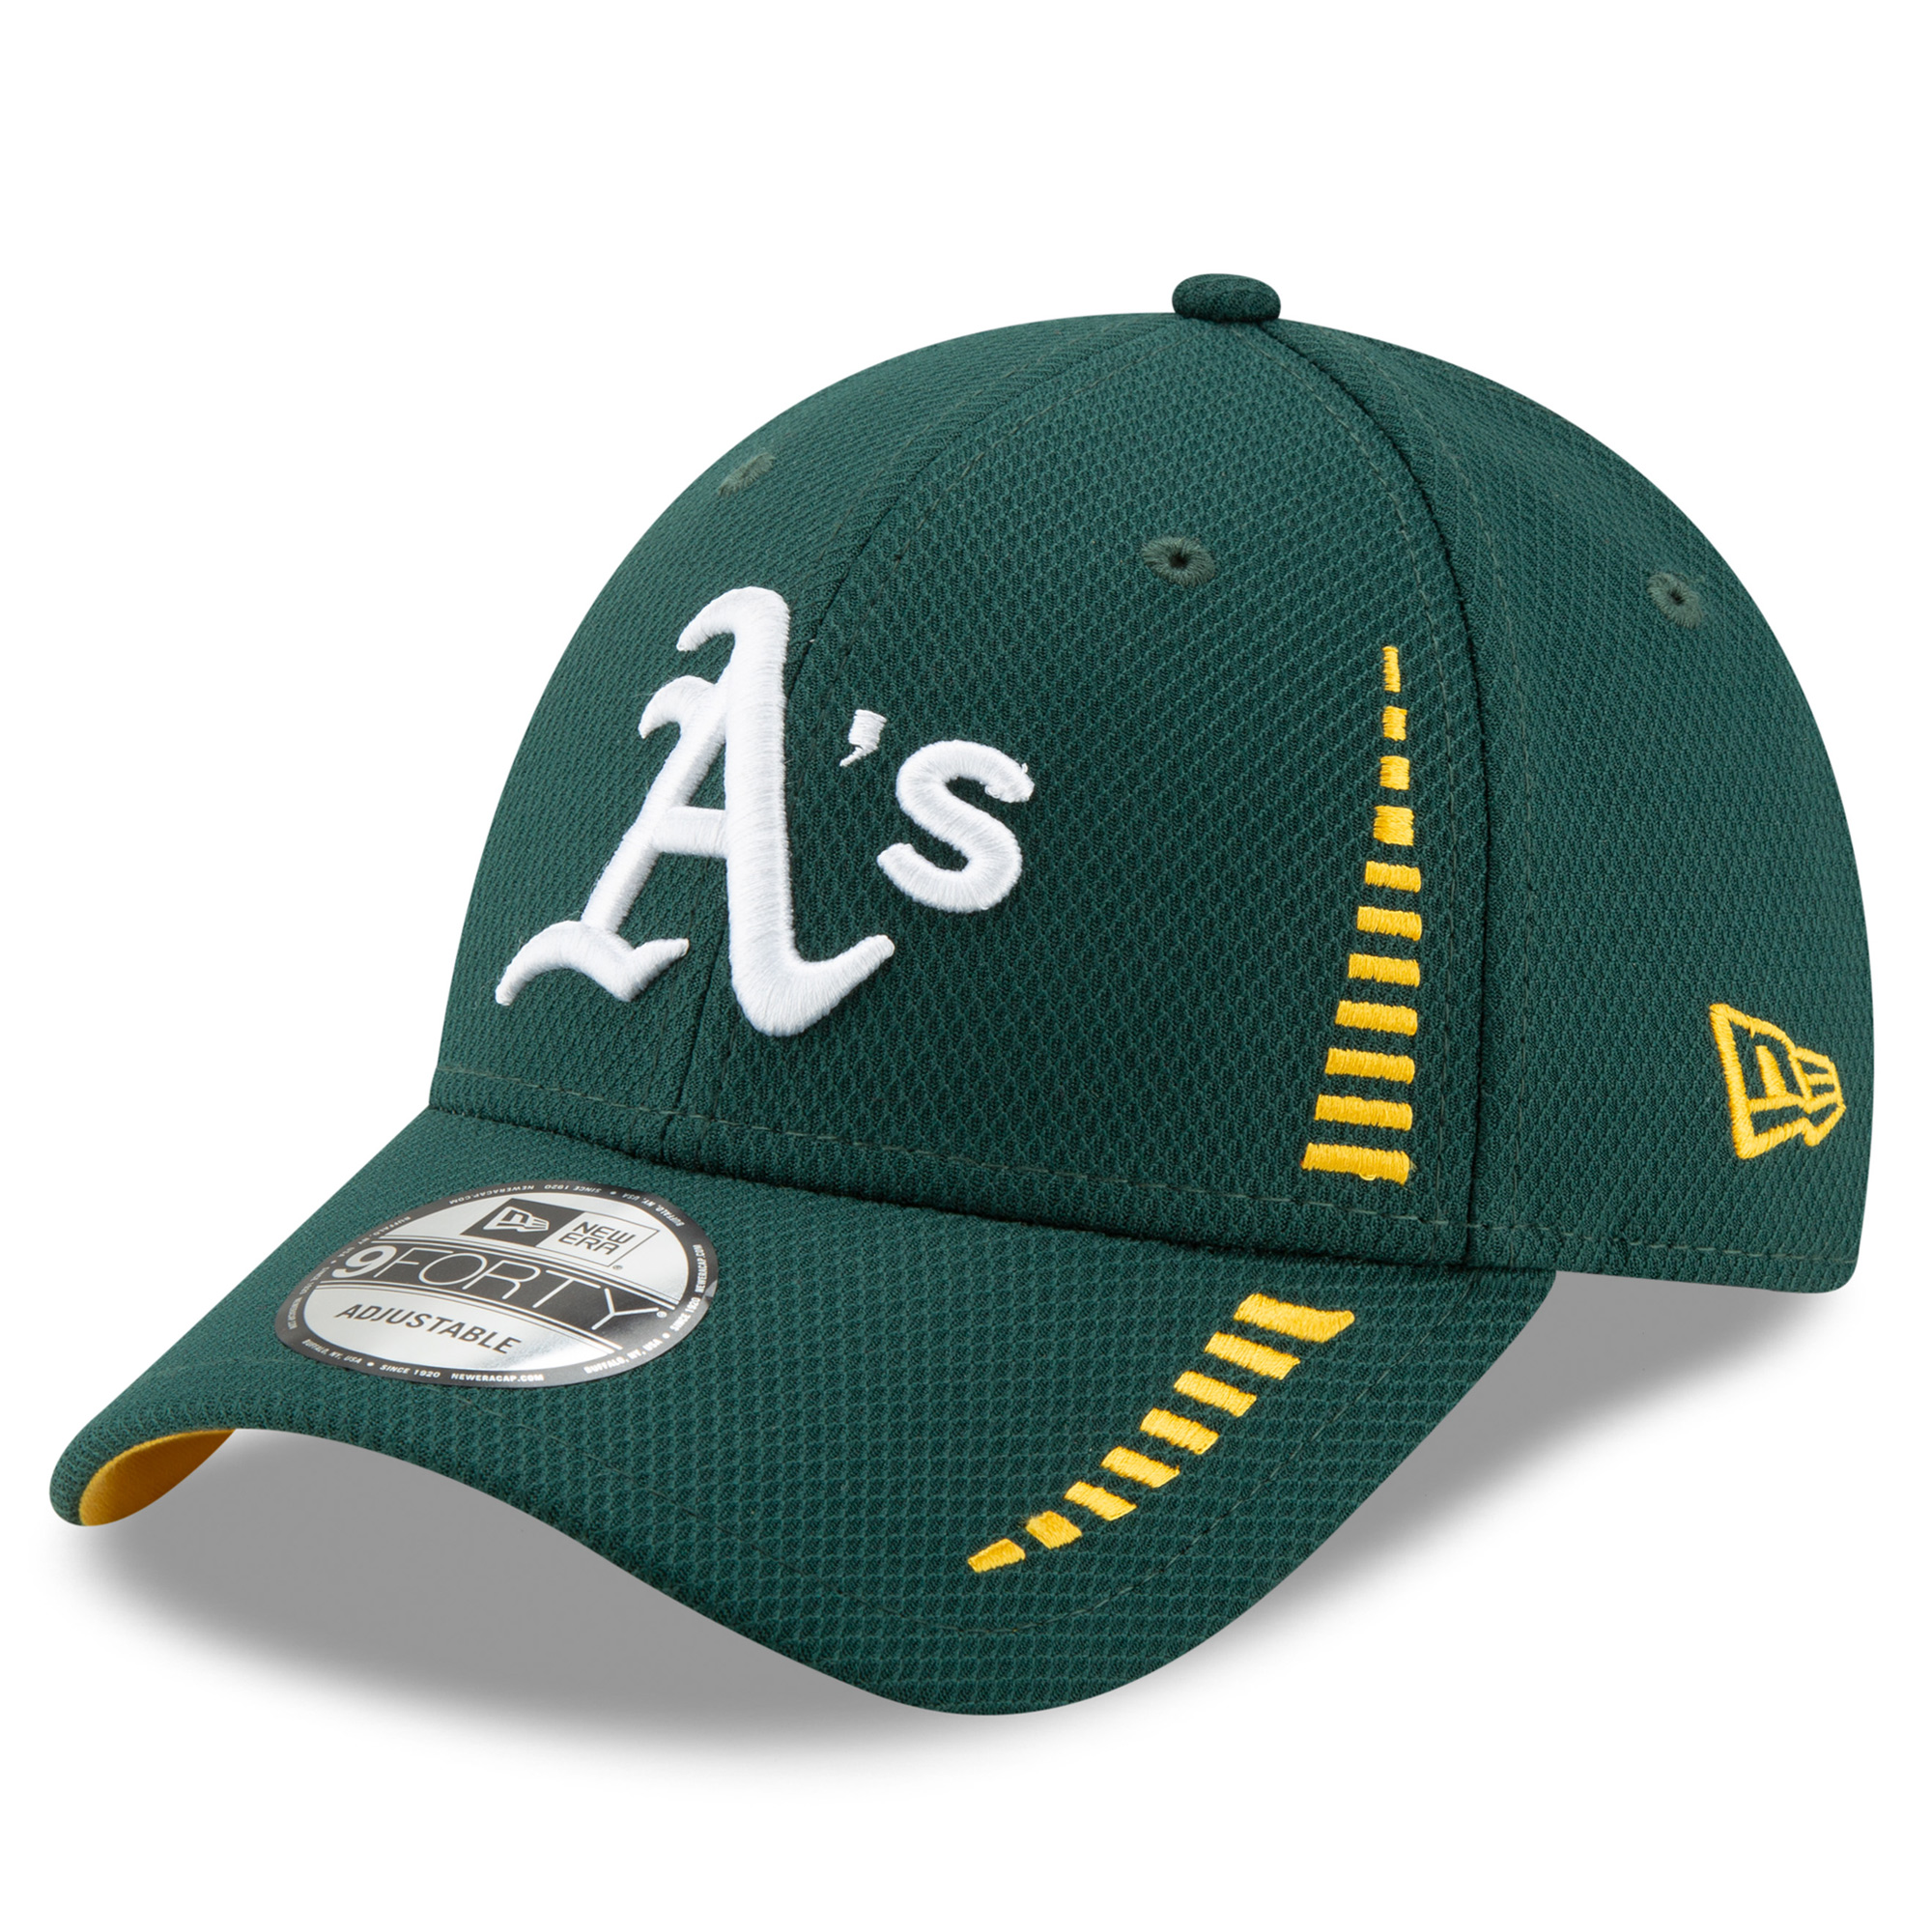 Oakland Athletics New Era Speed Tech 9FORTY Adjustable Hat - Green - OSFA